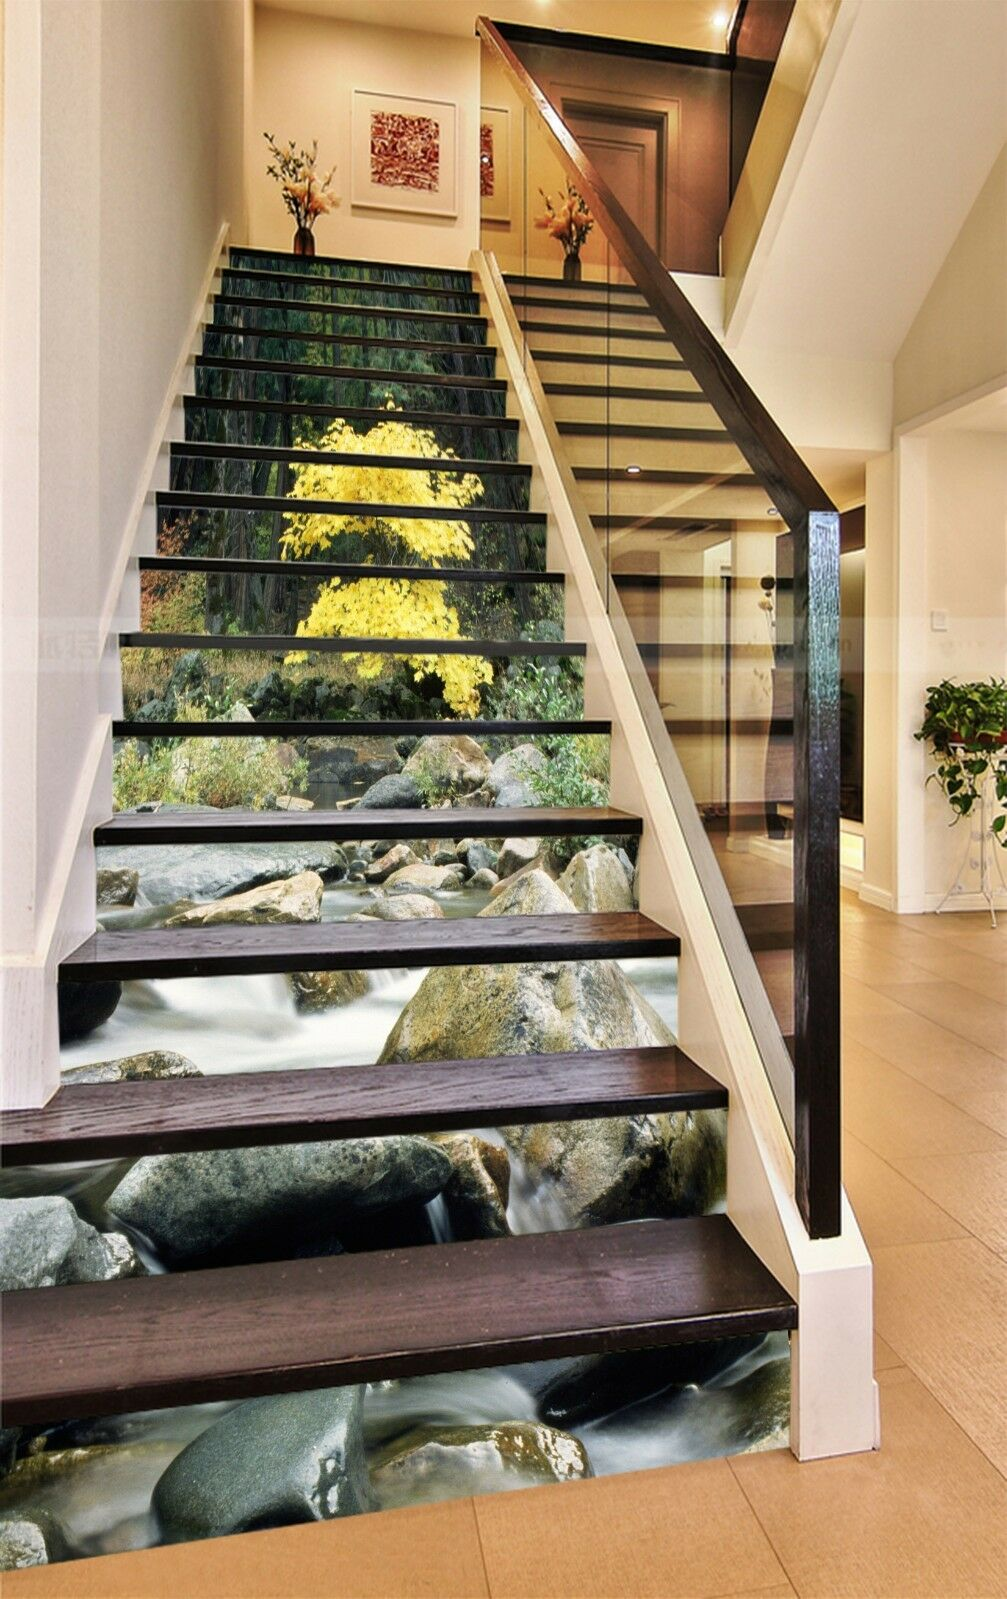 3D Tree stone 5 Stair Risers Decoration Photo Mural Vinyl Decal Wallpaper UK